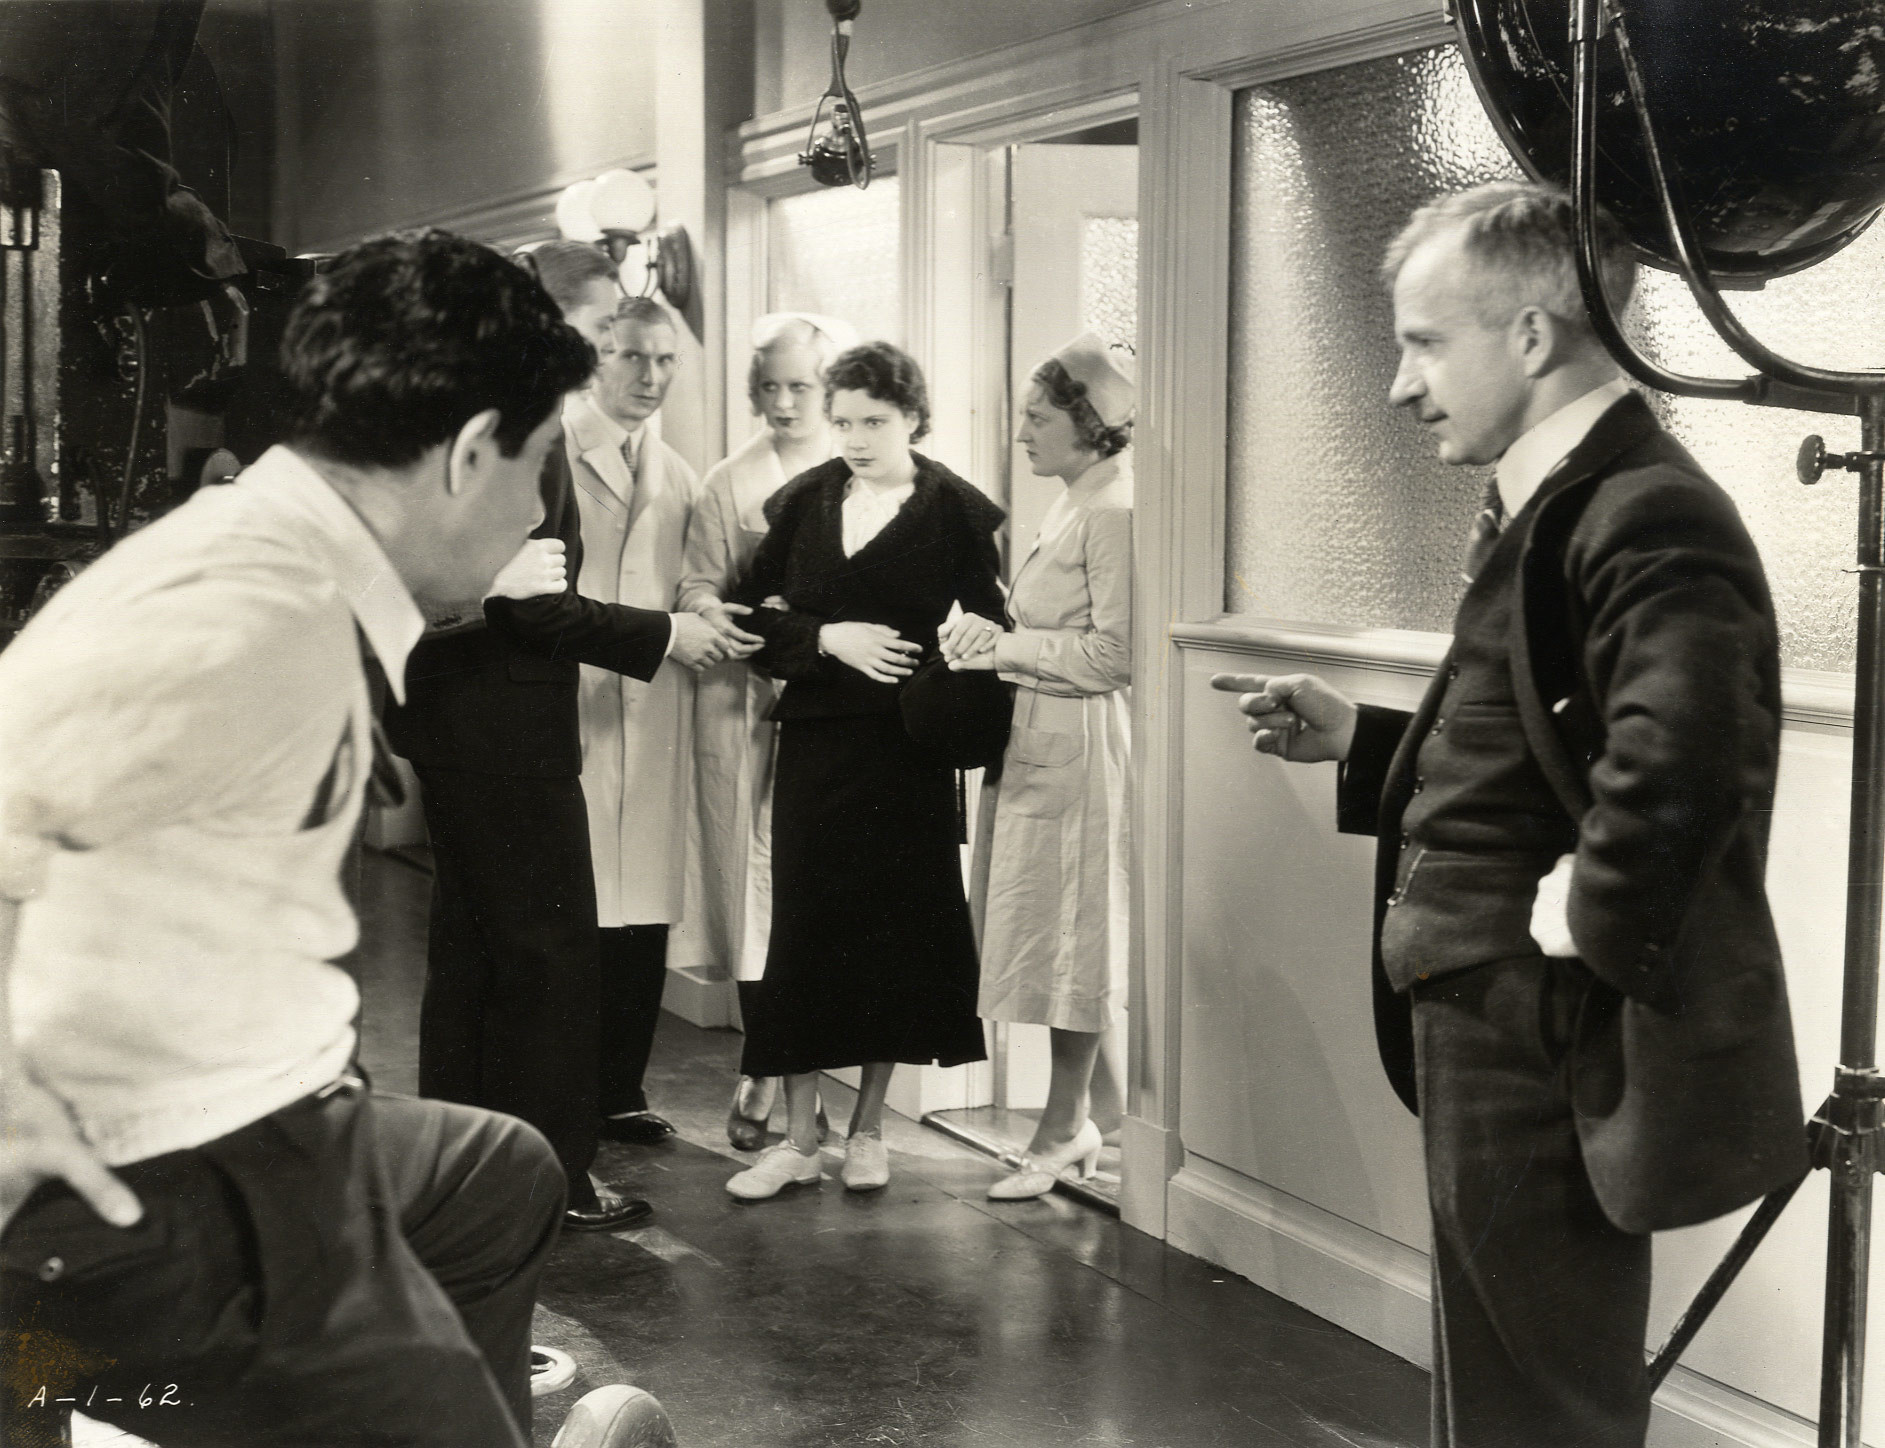 Damaged Lives. 1933. USA. Directed by Edgar G. Ulmer